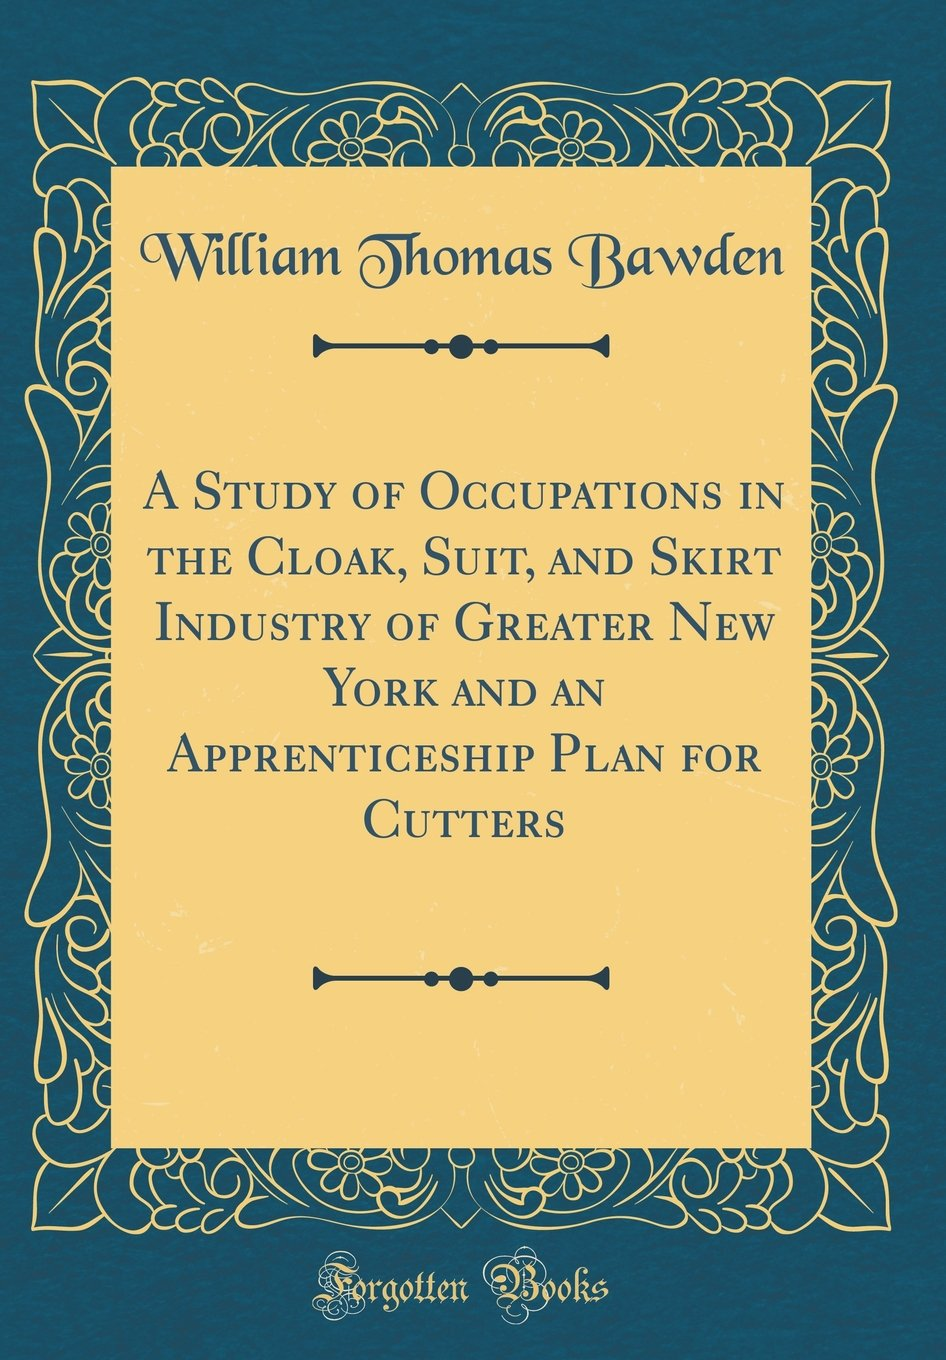 Download A Study of Occupations in the Cloak, Suit, and Skirt Industry of Greater New York and an Apprenticeship Plan for Cutters (Classic Reprint) PDF